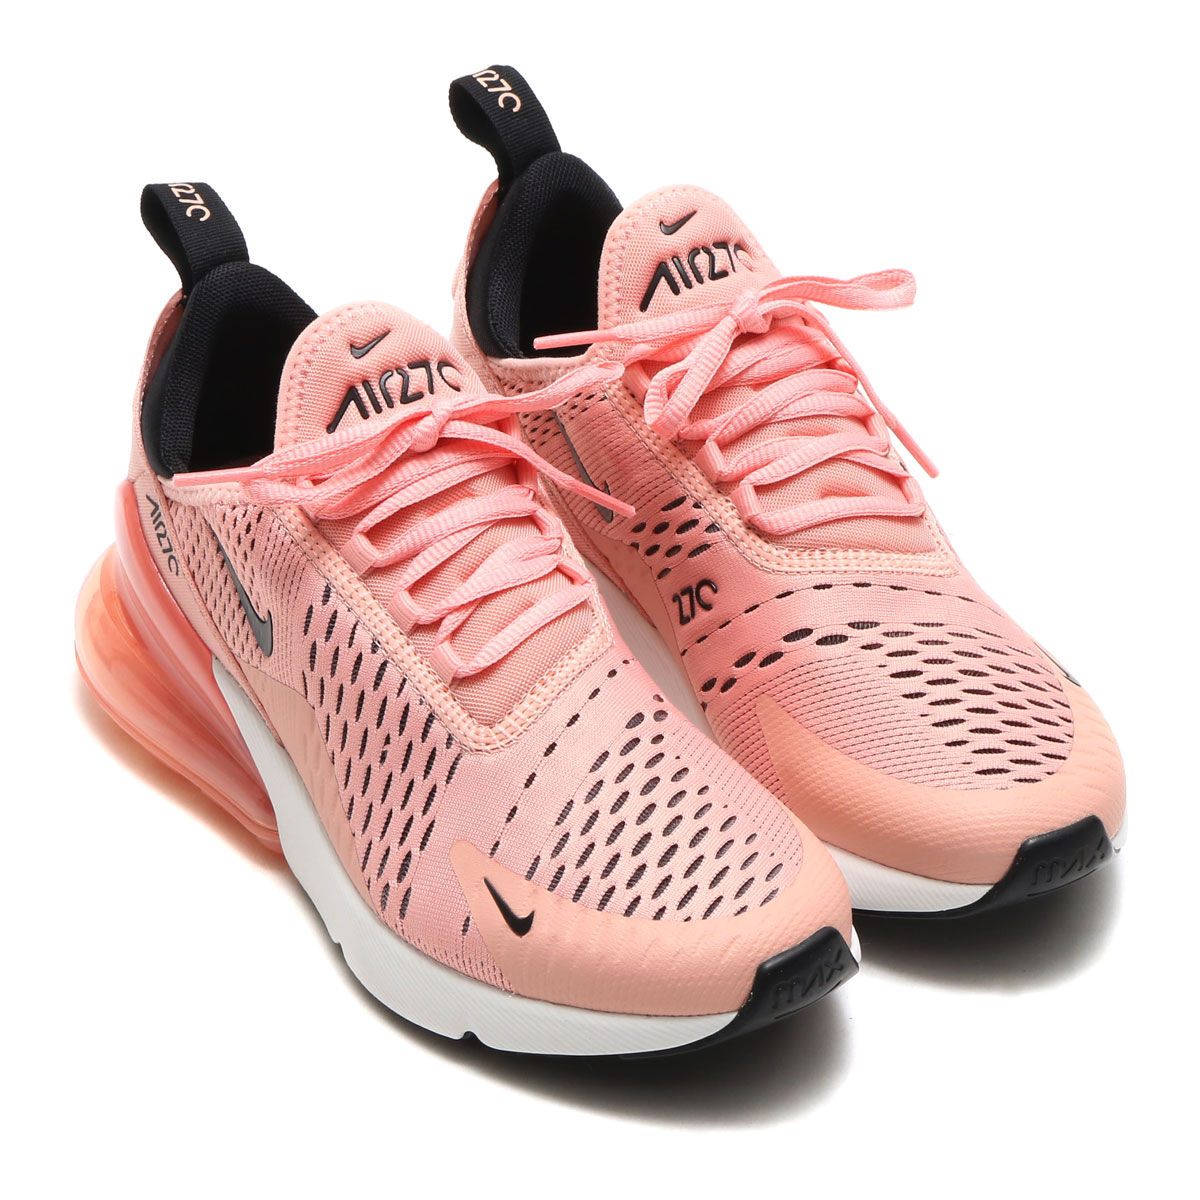 super popular f5490 7e88f Nike Air Max 270 Shoes for women shoes *Lucky 7 store